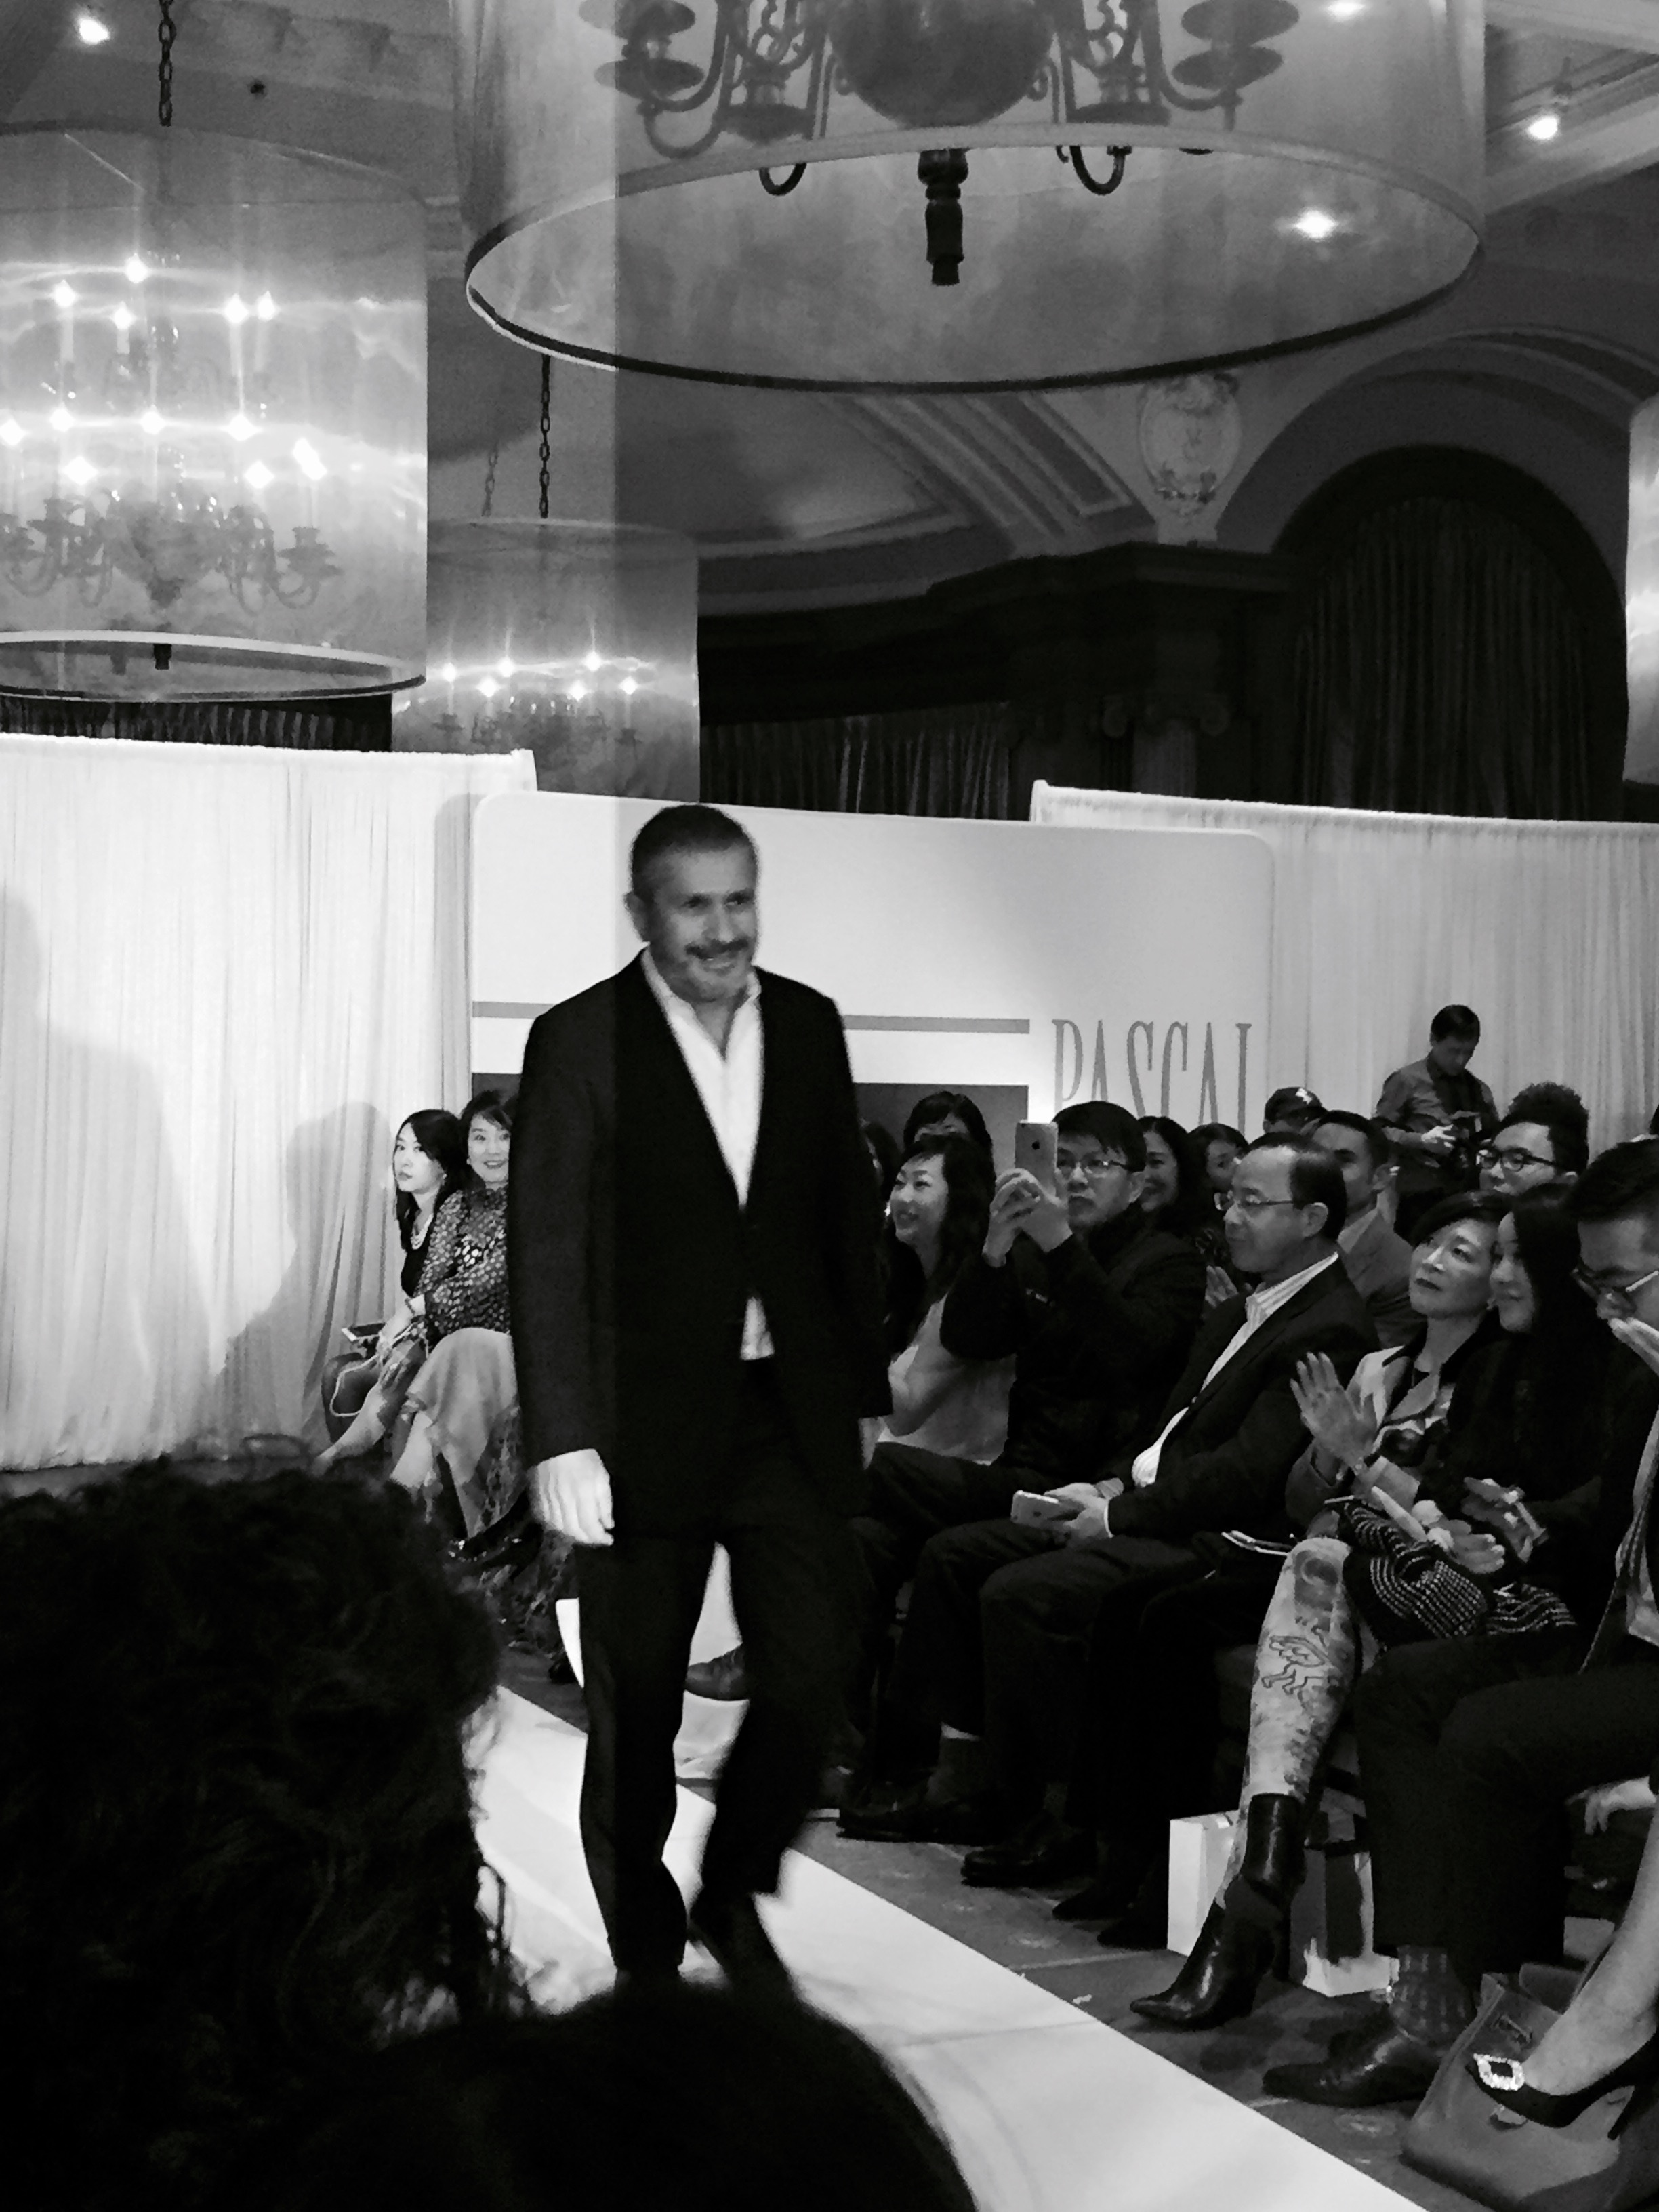 french designer pascal millet taking his finale walk after presenting his ss2016 collection at the vancouver club on november 6, 2015.